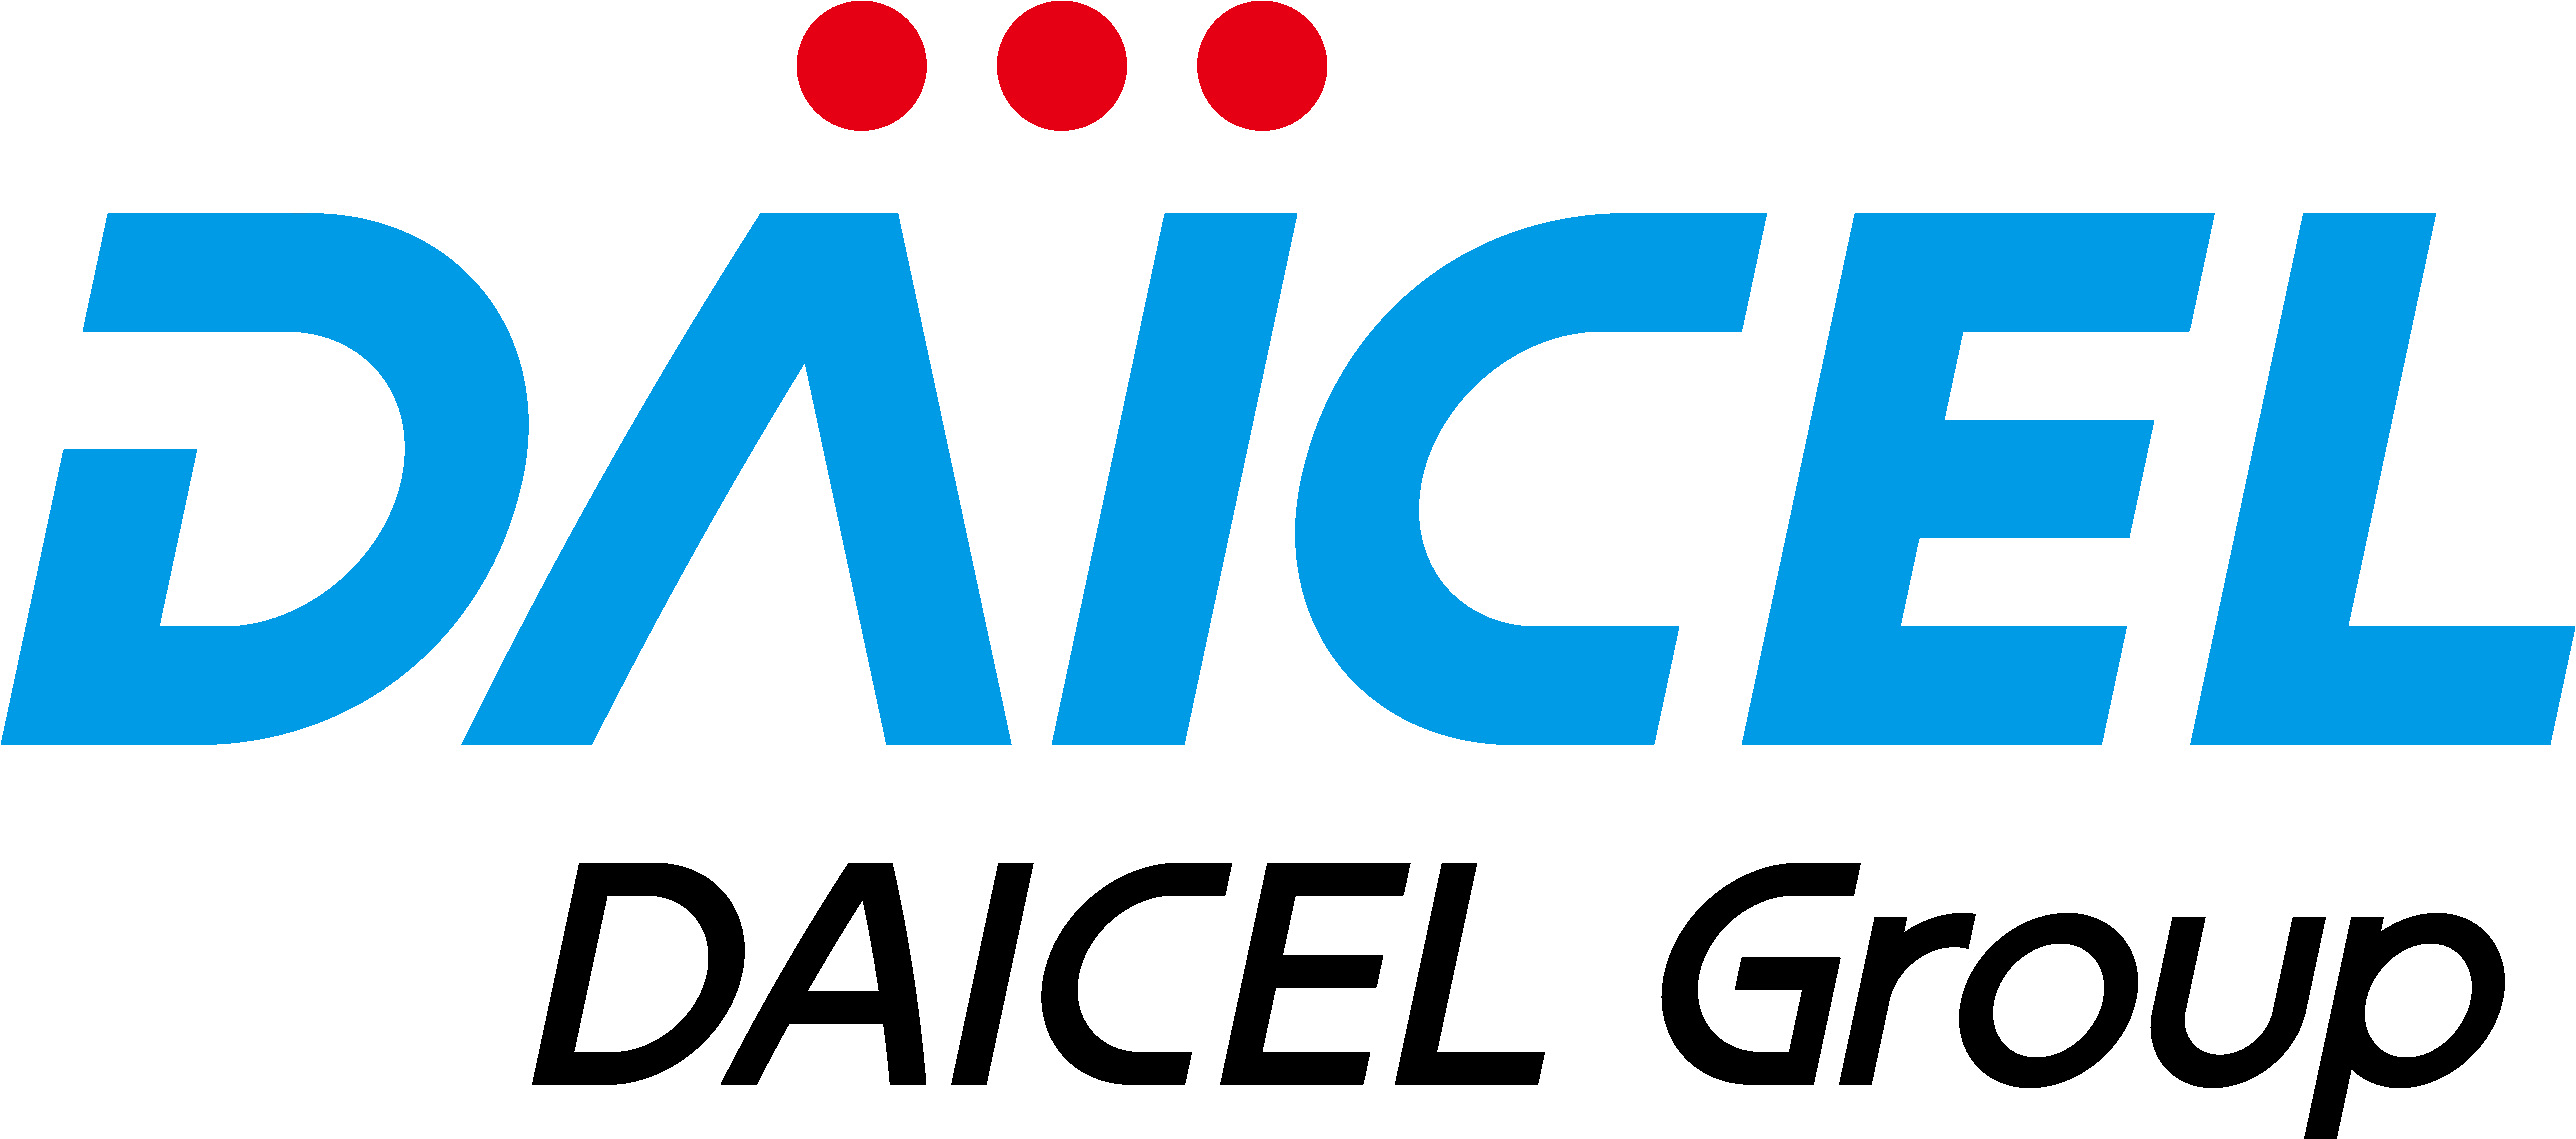 DAICEL GROUP